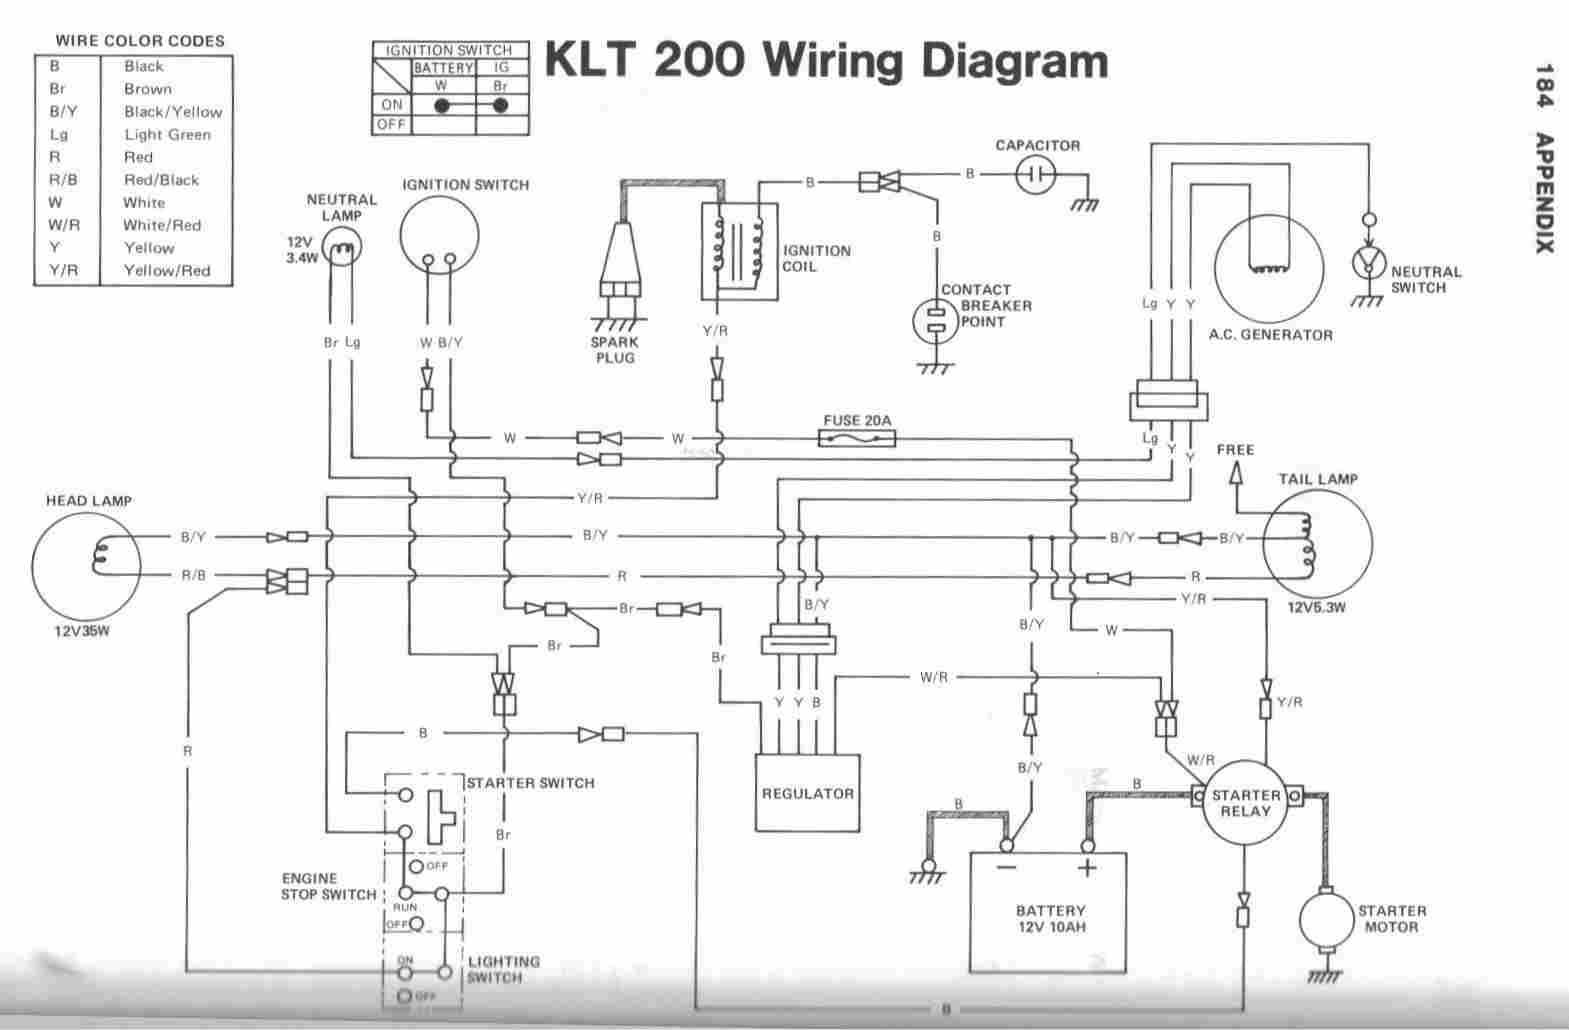 2869034594ce054a636782e5c44b61b4 residential electrical wiring diagrams pdf easy routing cool schematic wiring diagram at readyjetset.co